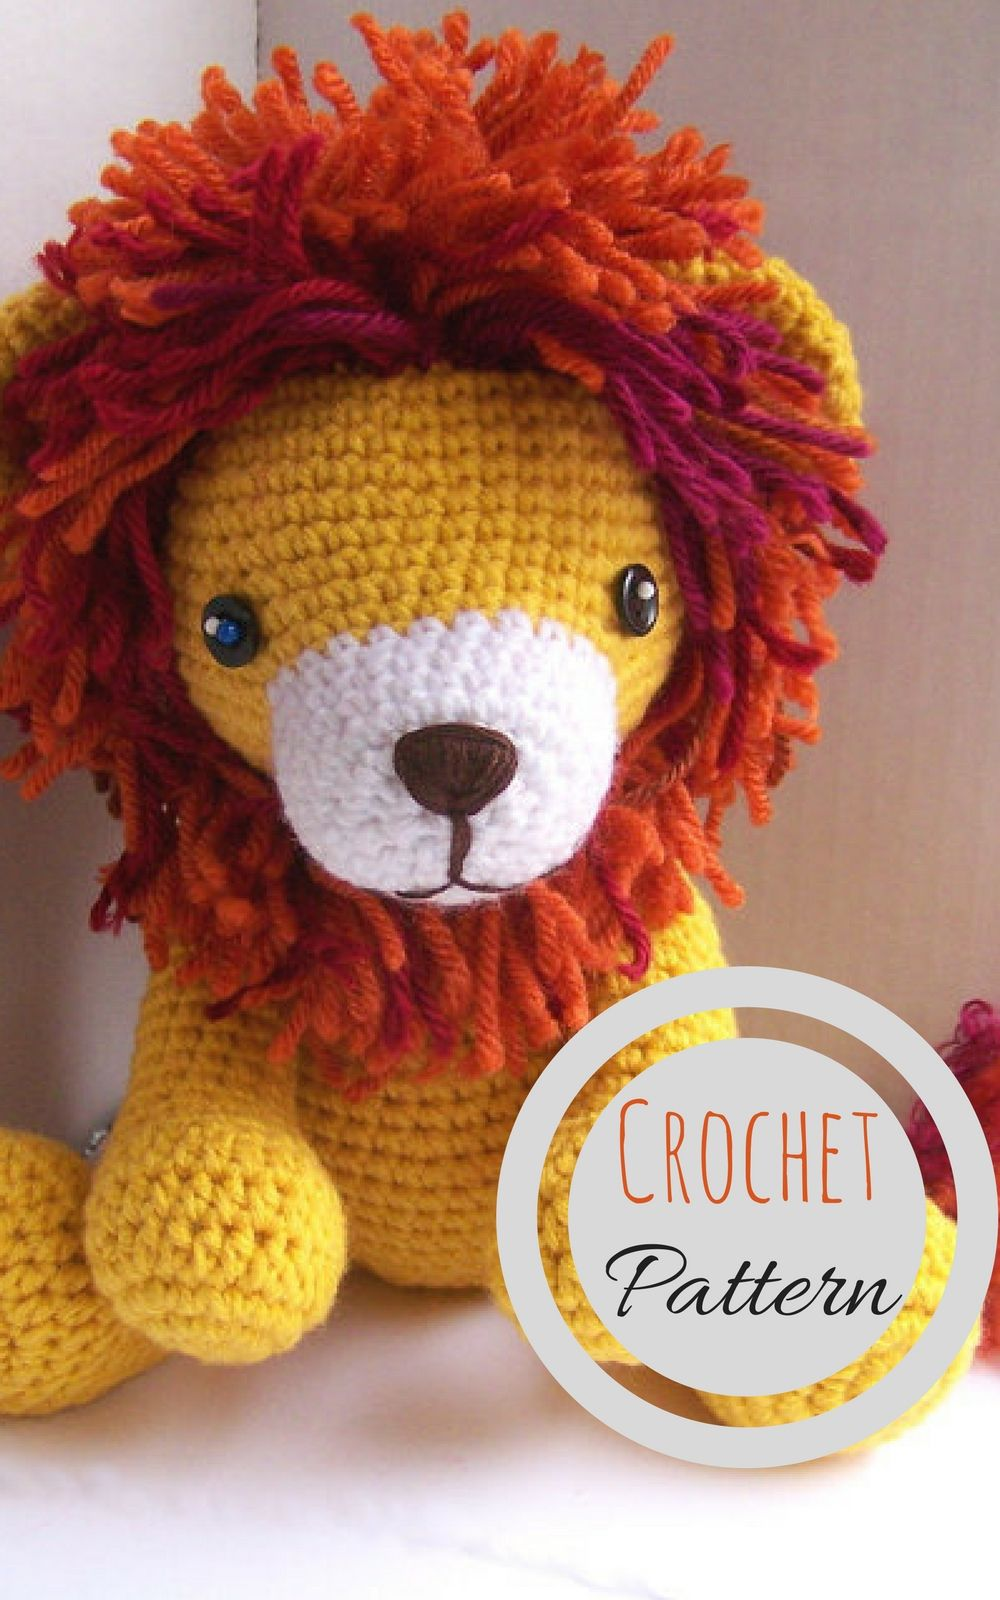 Instant Download Crochet Pattern-Baby Lion-Toy Lion-Amigurumi Lion-DIY  Crochet Toy-Stuffed Toy Animal-Crochet Stuffed Lion  crochet  ad 9c8d86ab8ad